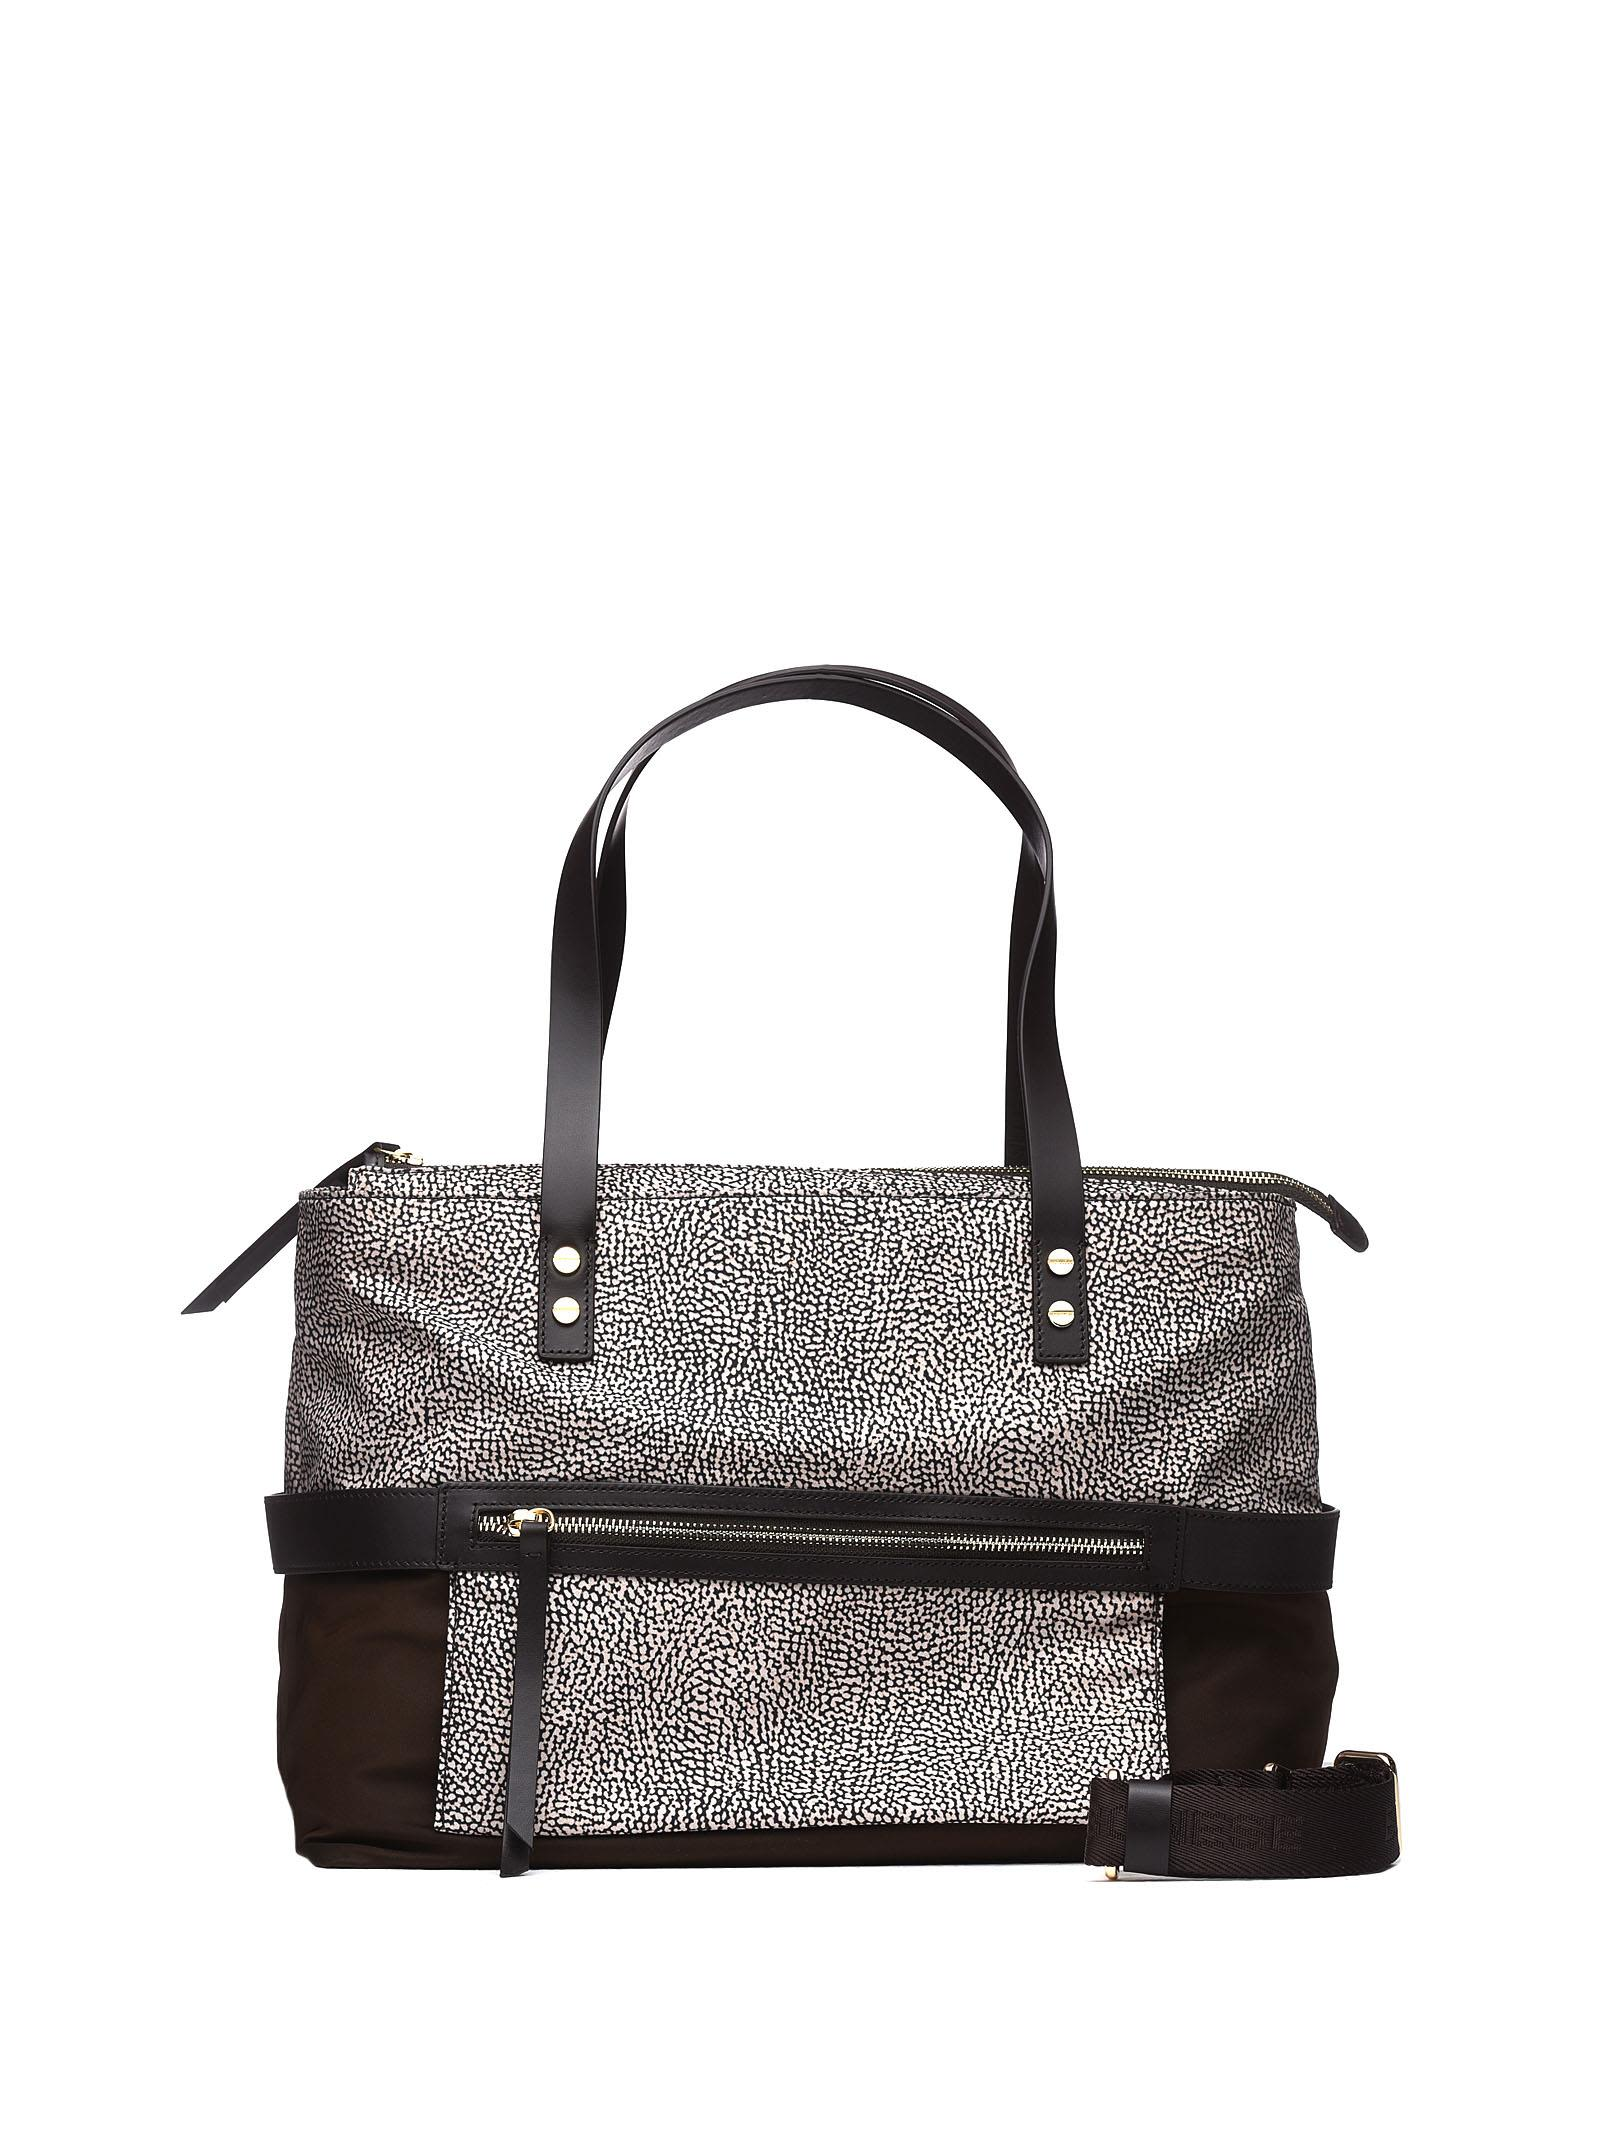 Borbonese MEDIUM-SIZE TOTE BAG